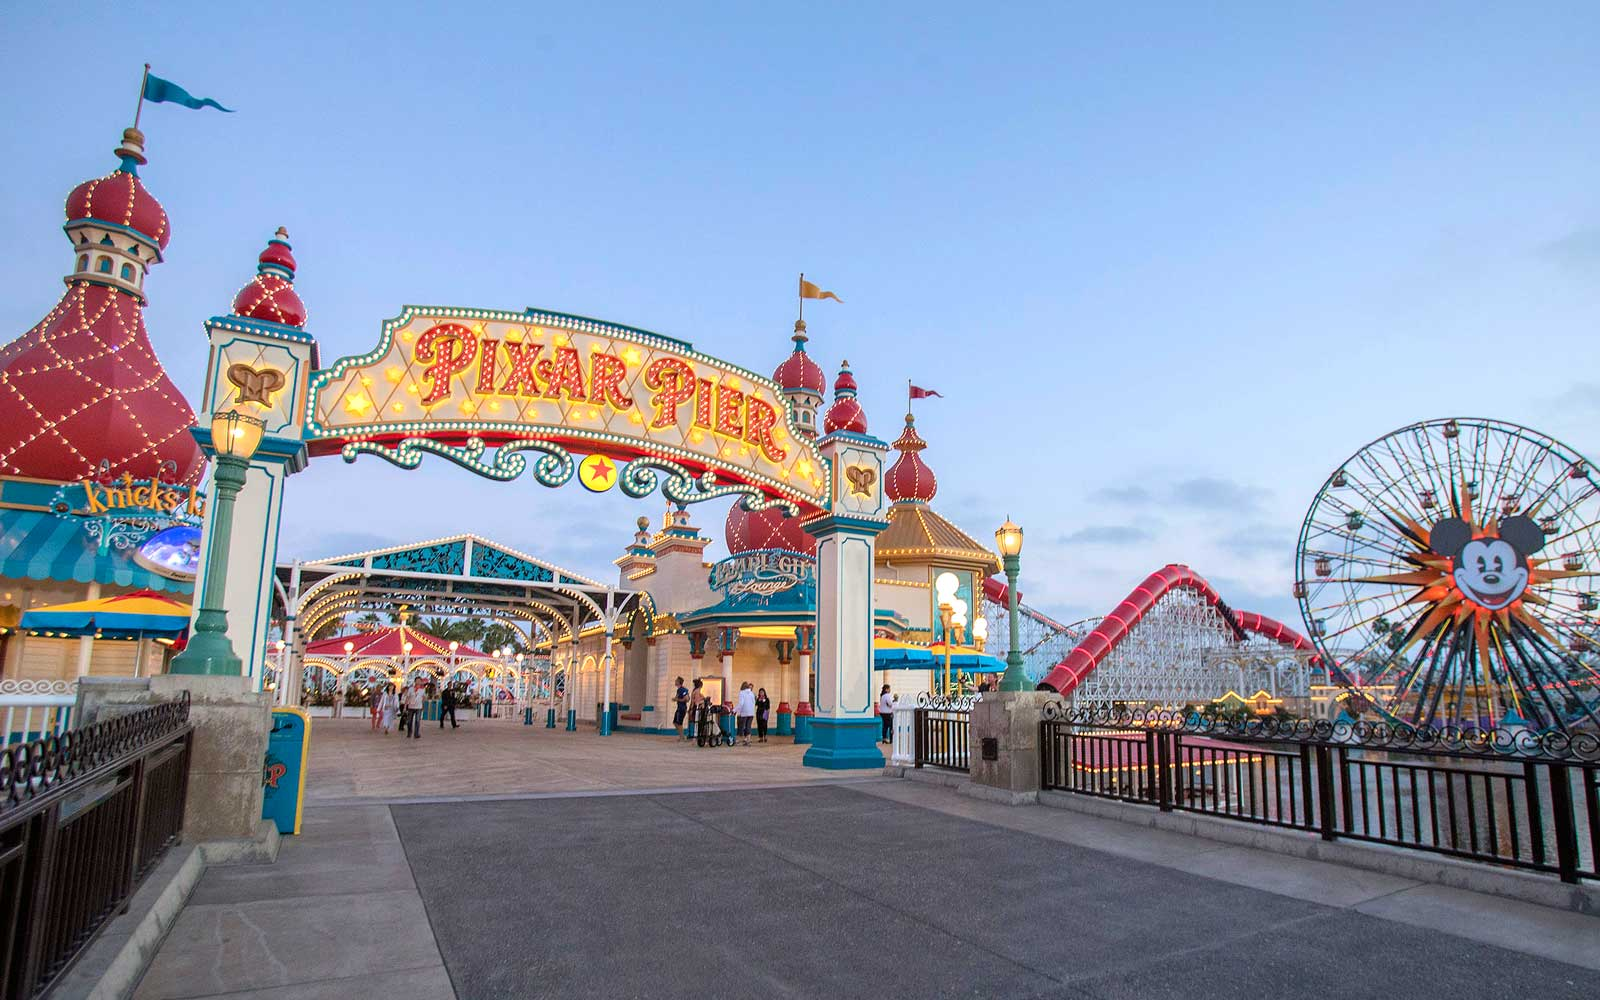 Pixar Pier Is Finally Open at Disney California Adventure — Here's What You Can Expect